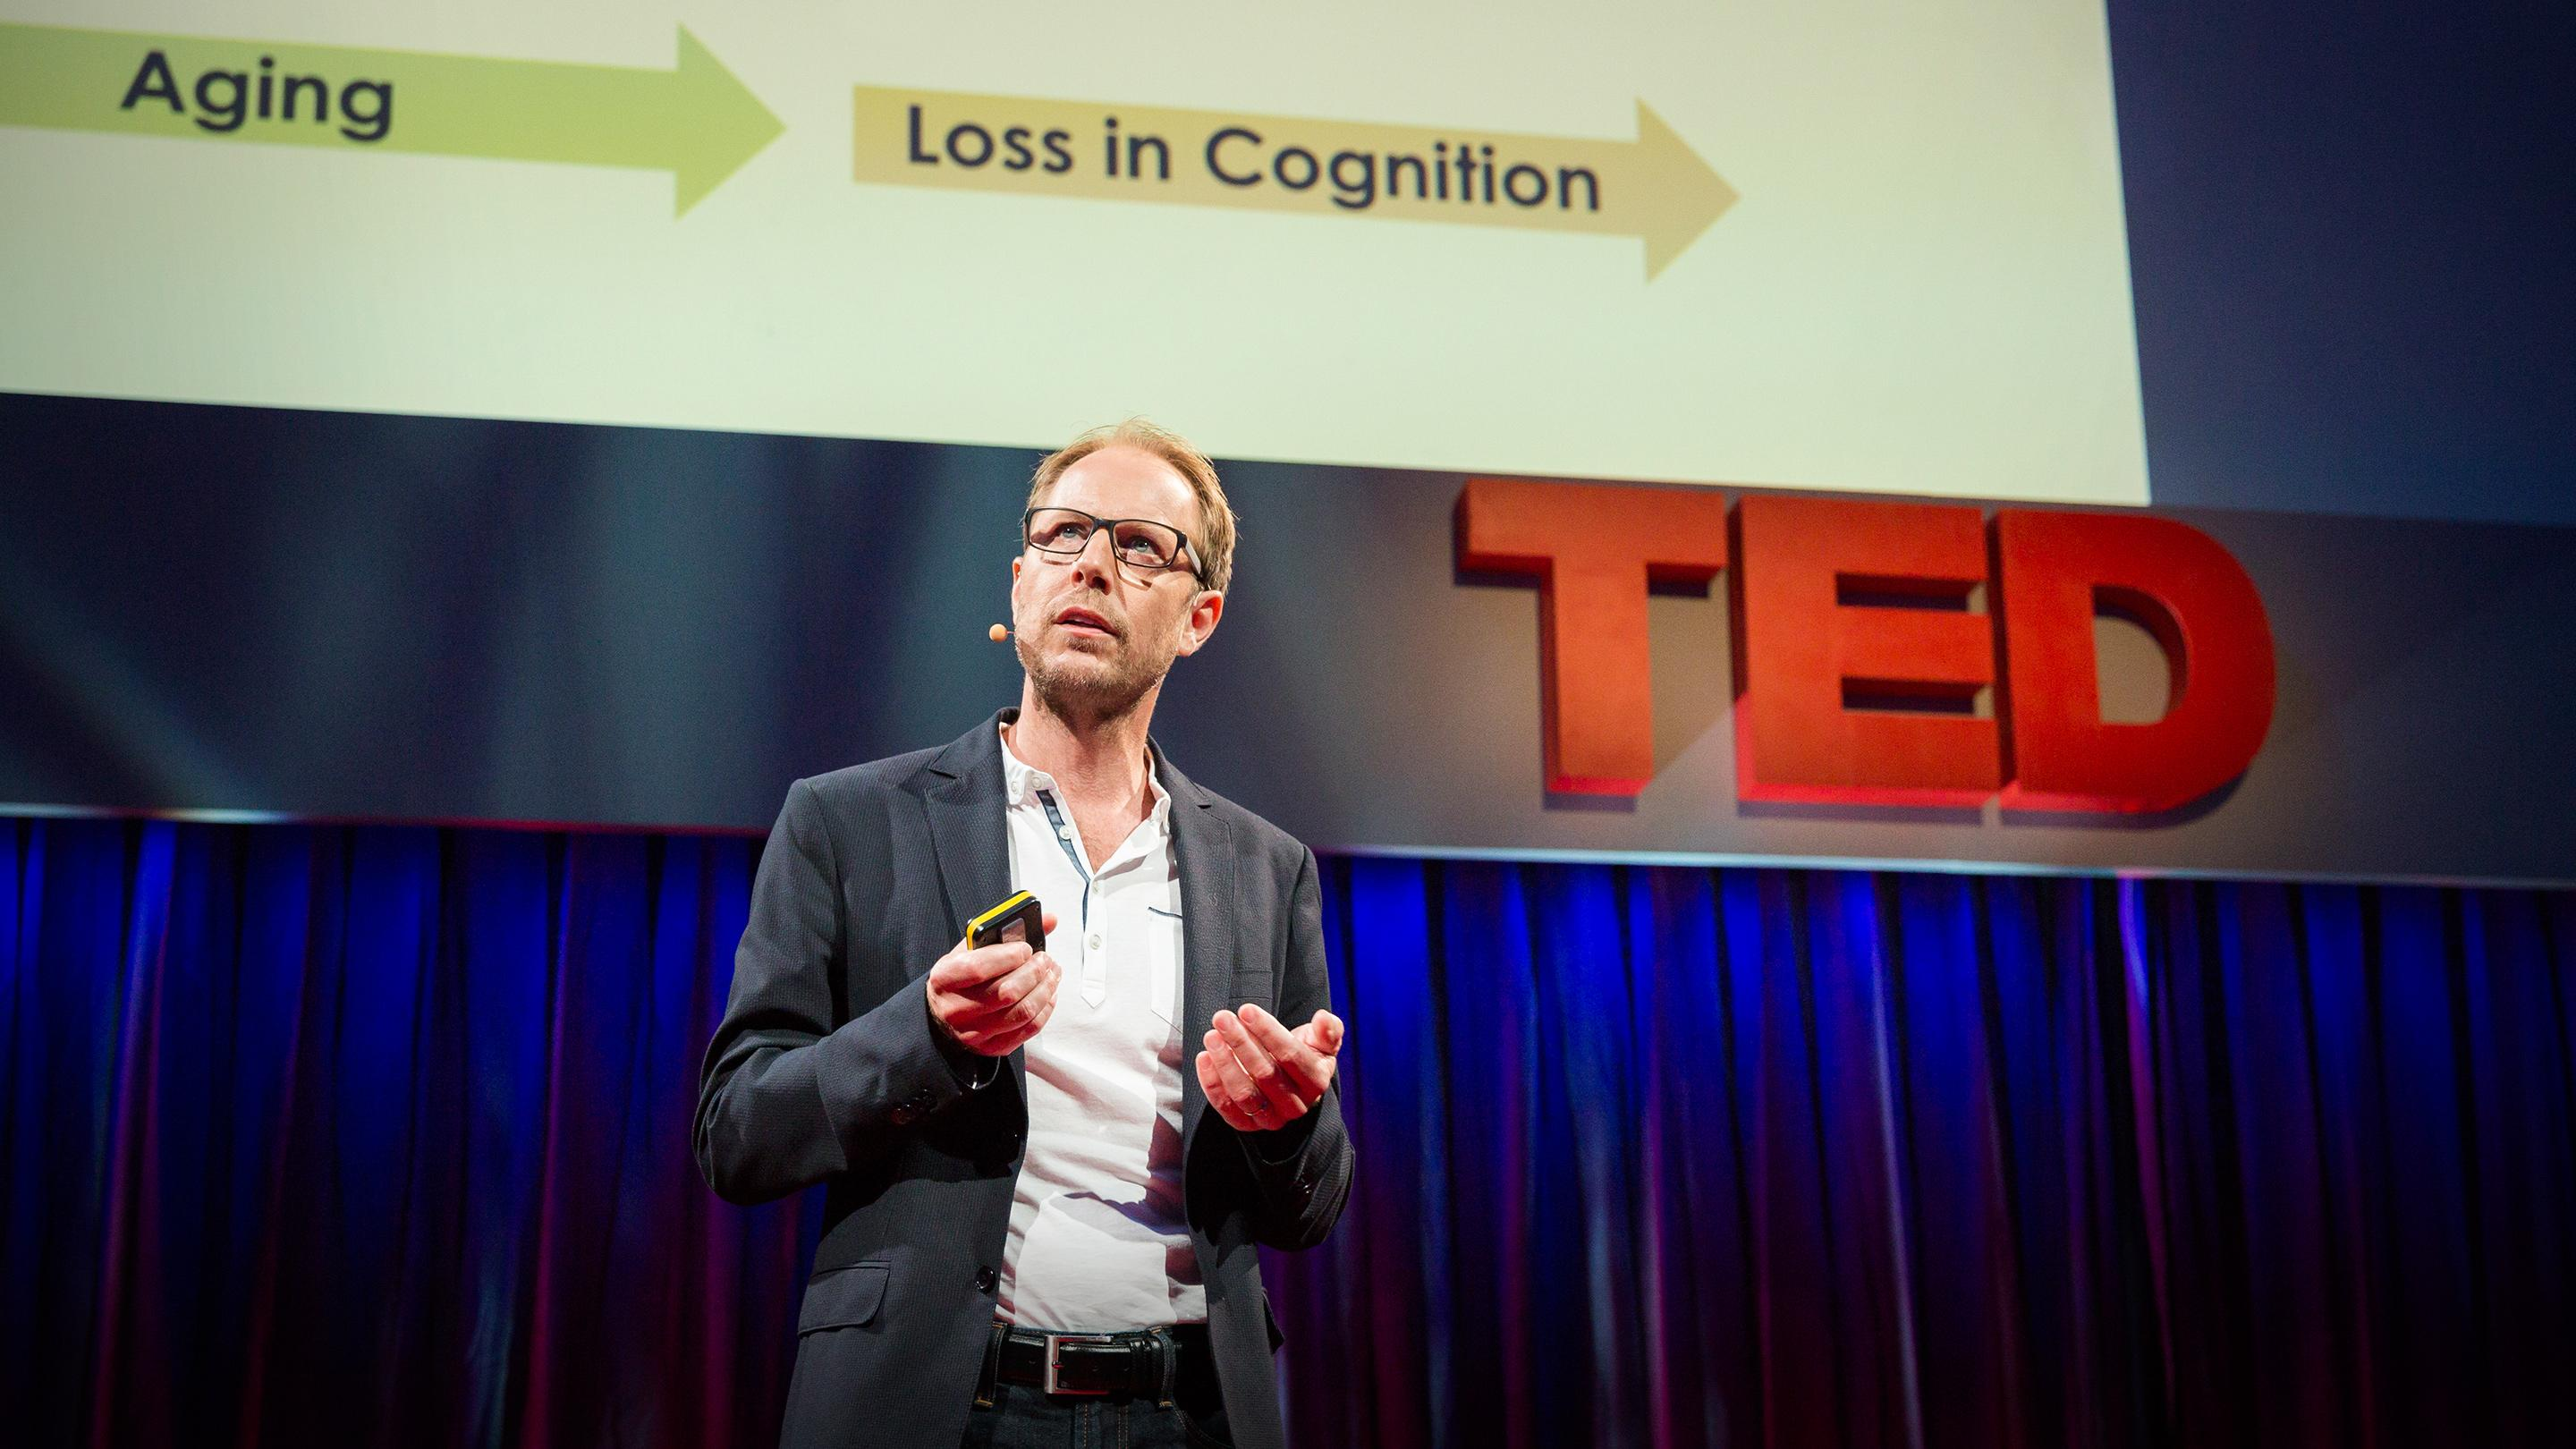 tony wysscoray how young blood might help reverse aging